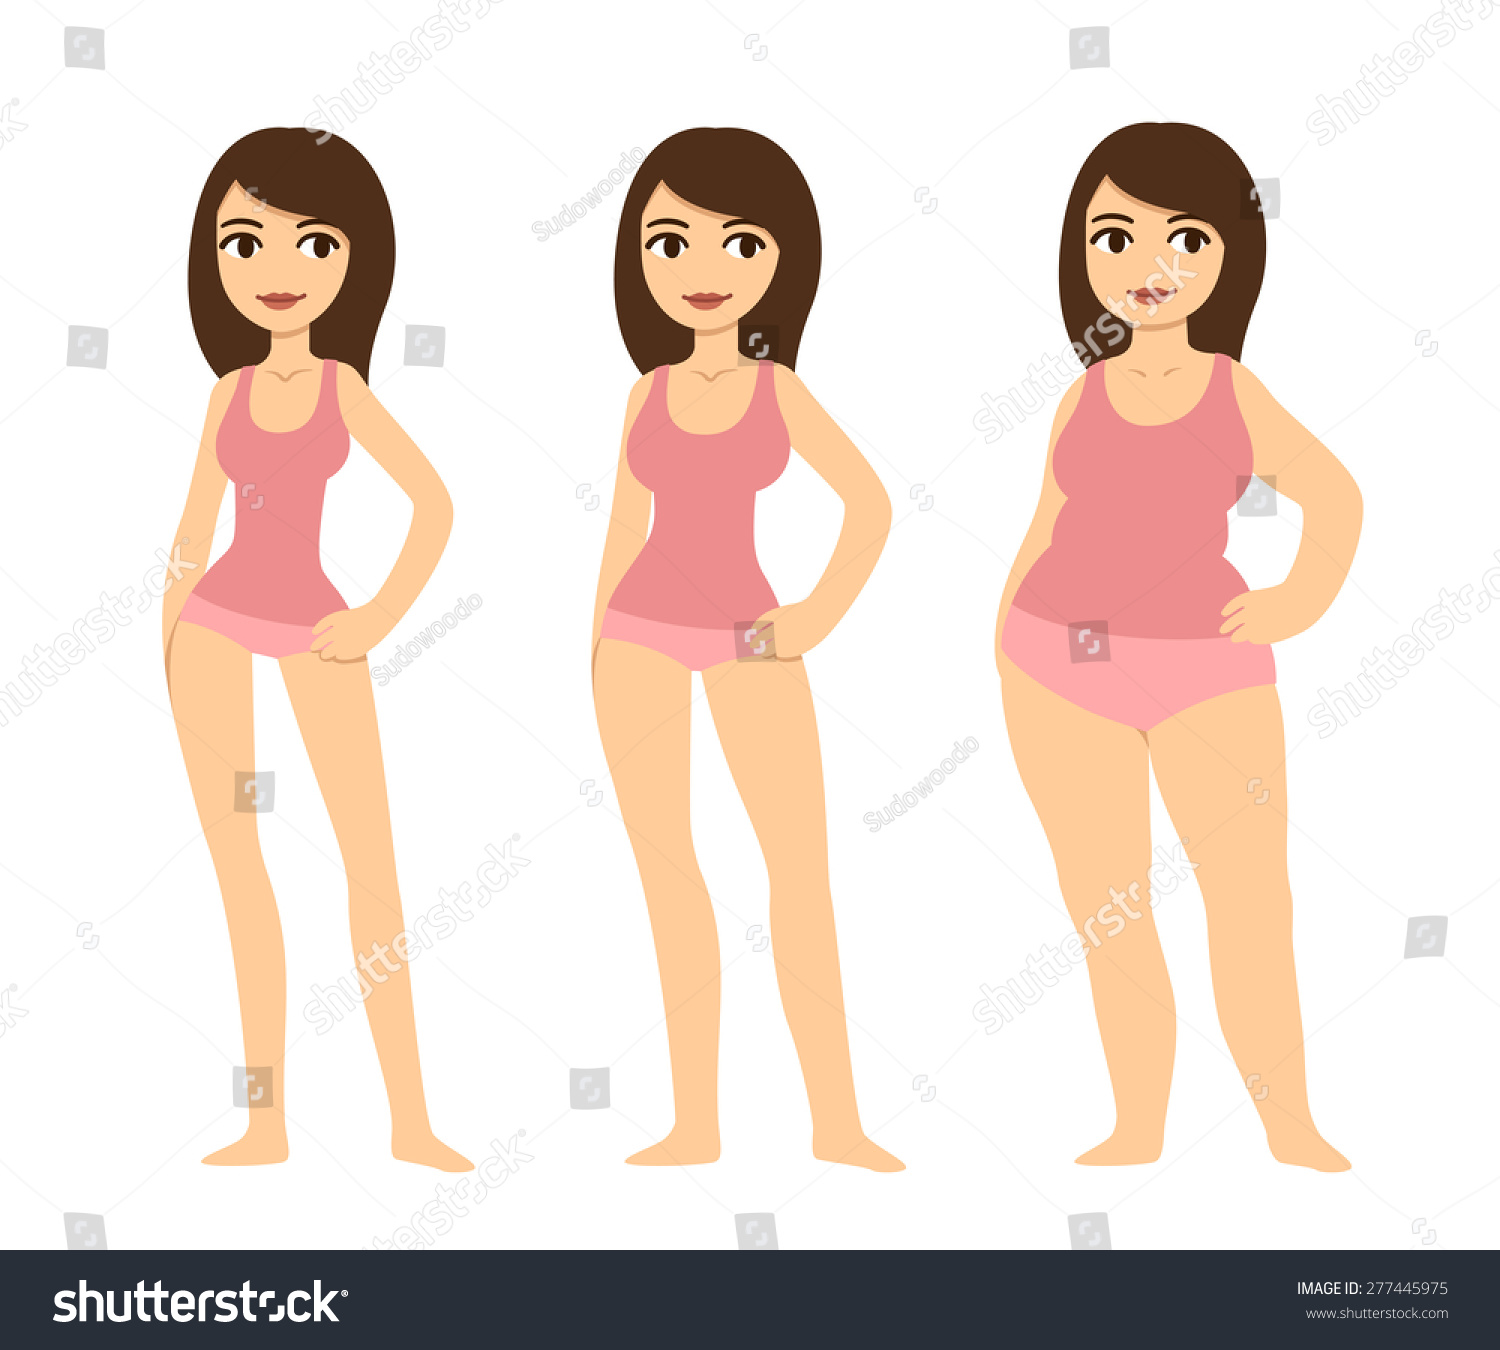 Chubby women catagories